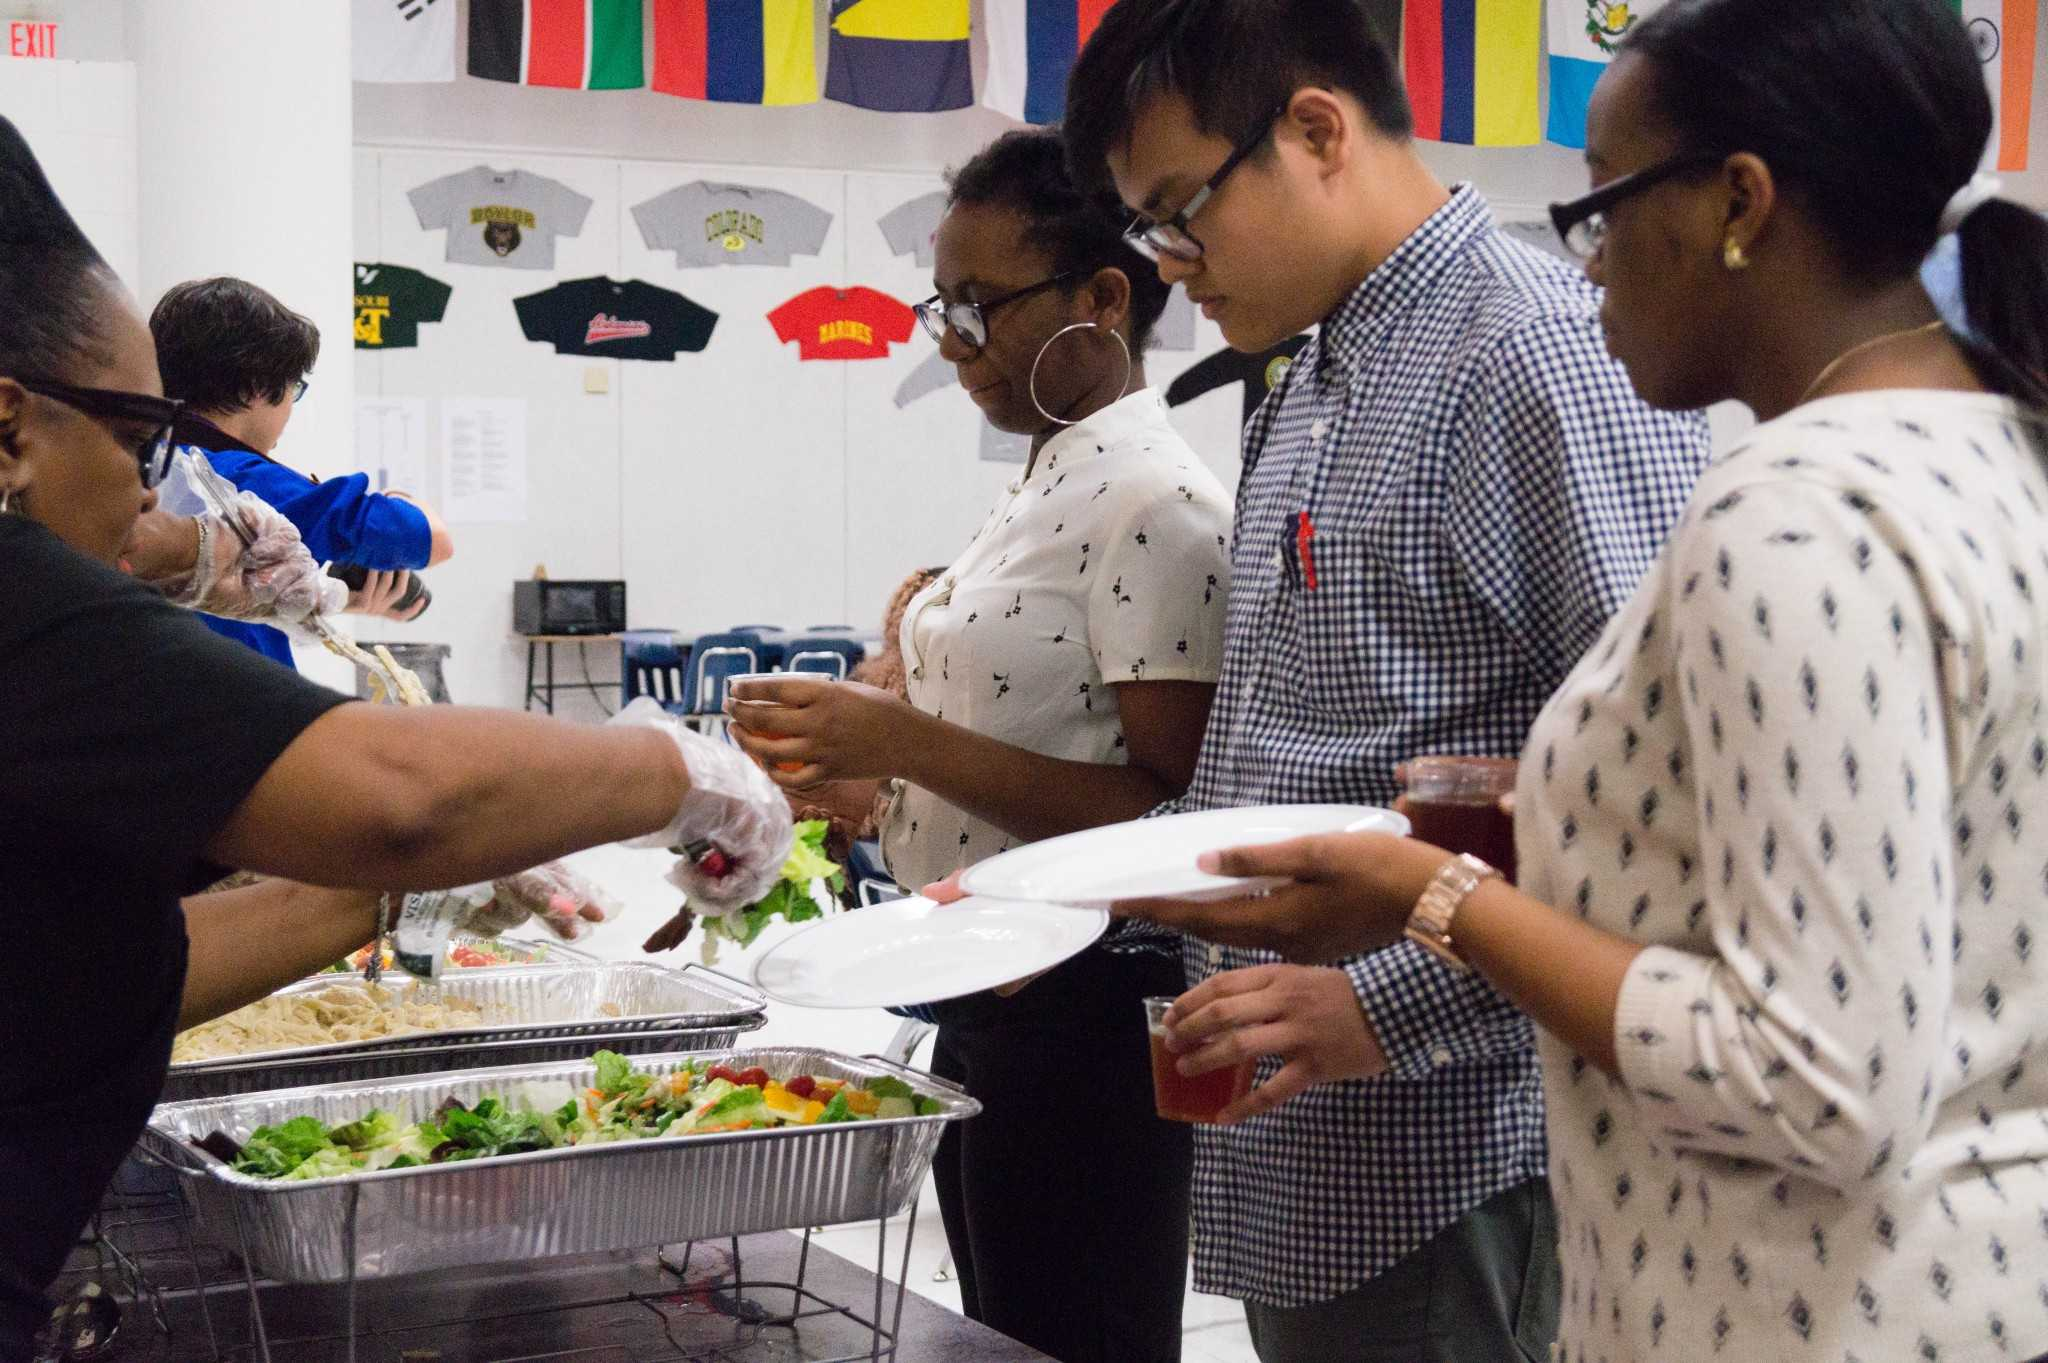 Duy Vo (12), Ashley Gwananji (12), and Vina Nweke (12) wait and anticipate on getting their delicious Alfredo and salad for the Eating Etiquette Workshop where they learn how they should eat in professional dinner settings.